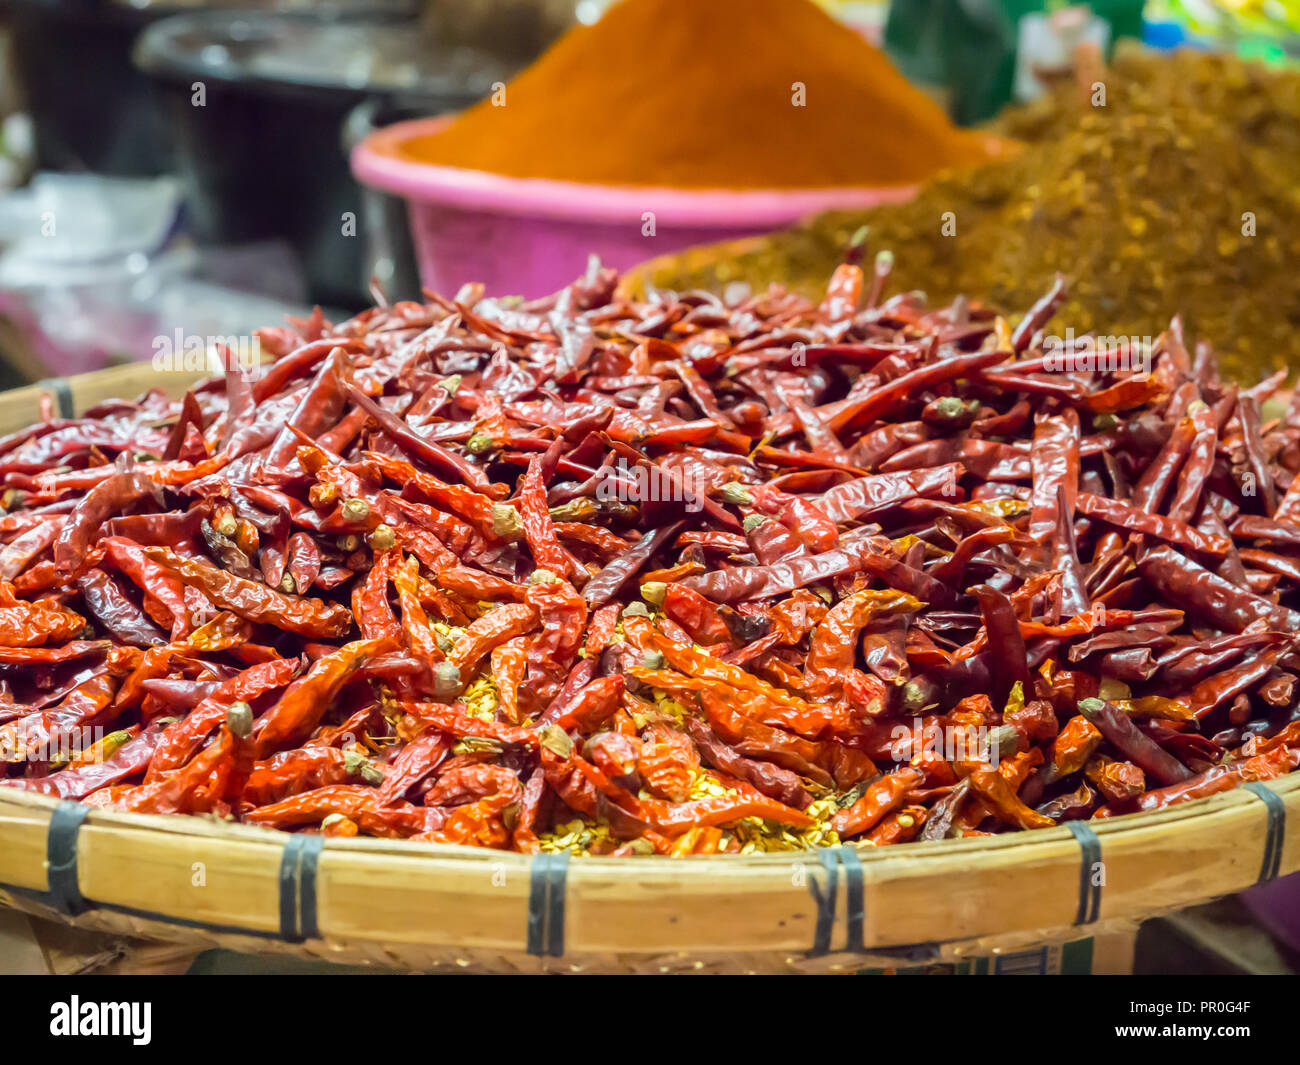 Chillies, Luang Prabang, Laos, Indochina, Southeast Asia, Asia - Stock Image